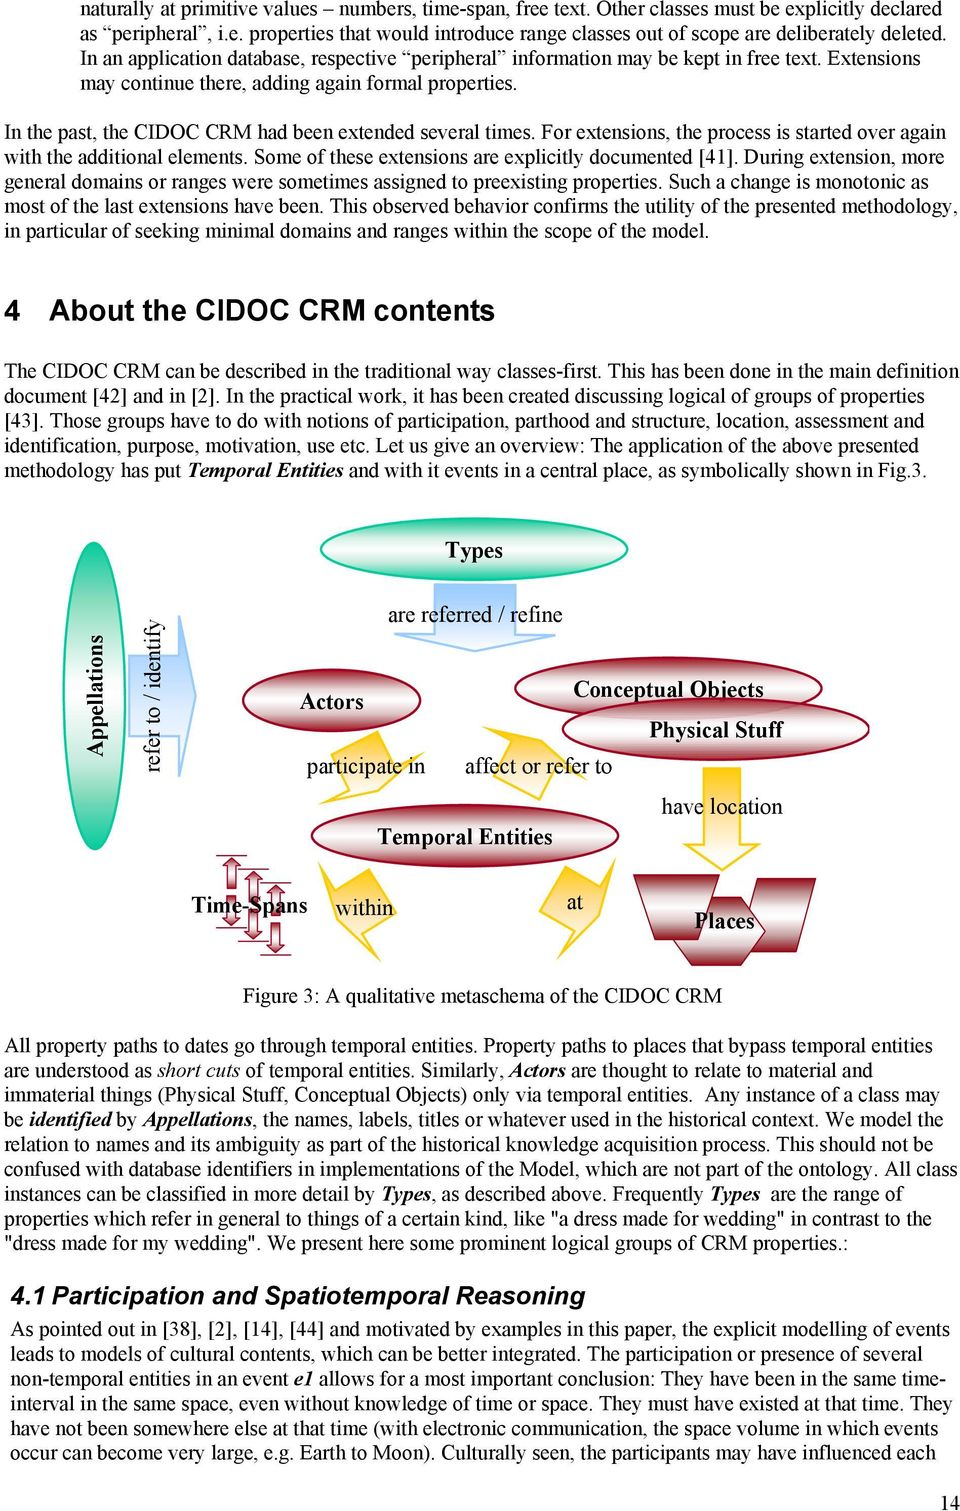 In the past, the CIDOC CRM had been extended several times. For extensions, the process is started over again with the additional elements. Some of these extensions are explicitly documented [41].